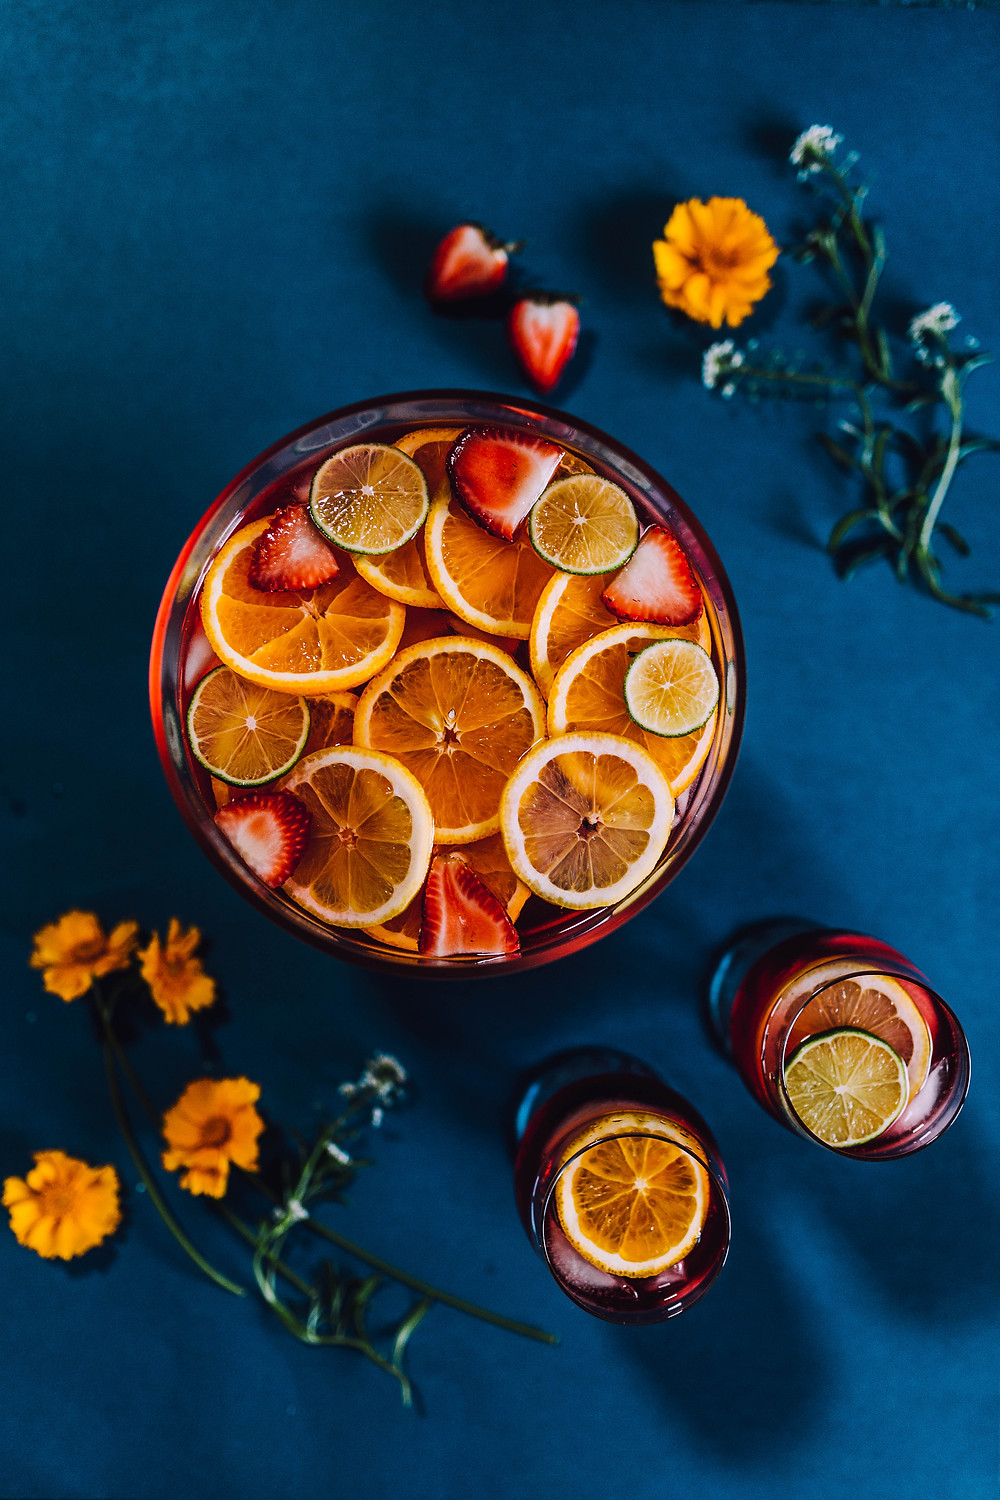 Passion Fruit Iced Tea with Citrus